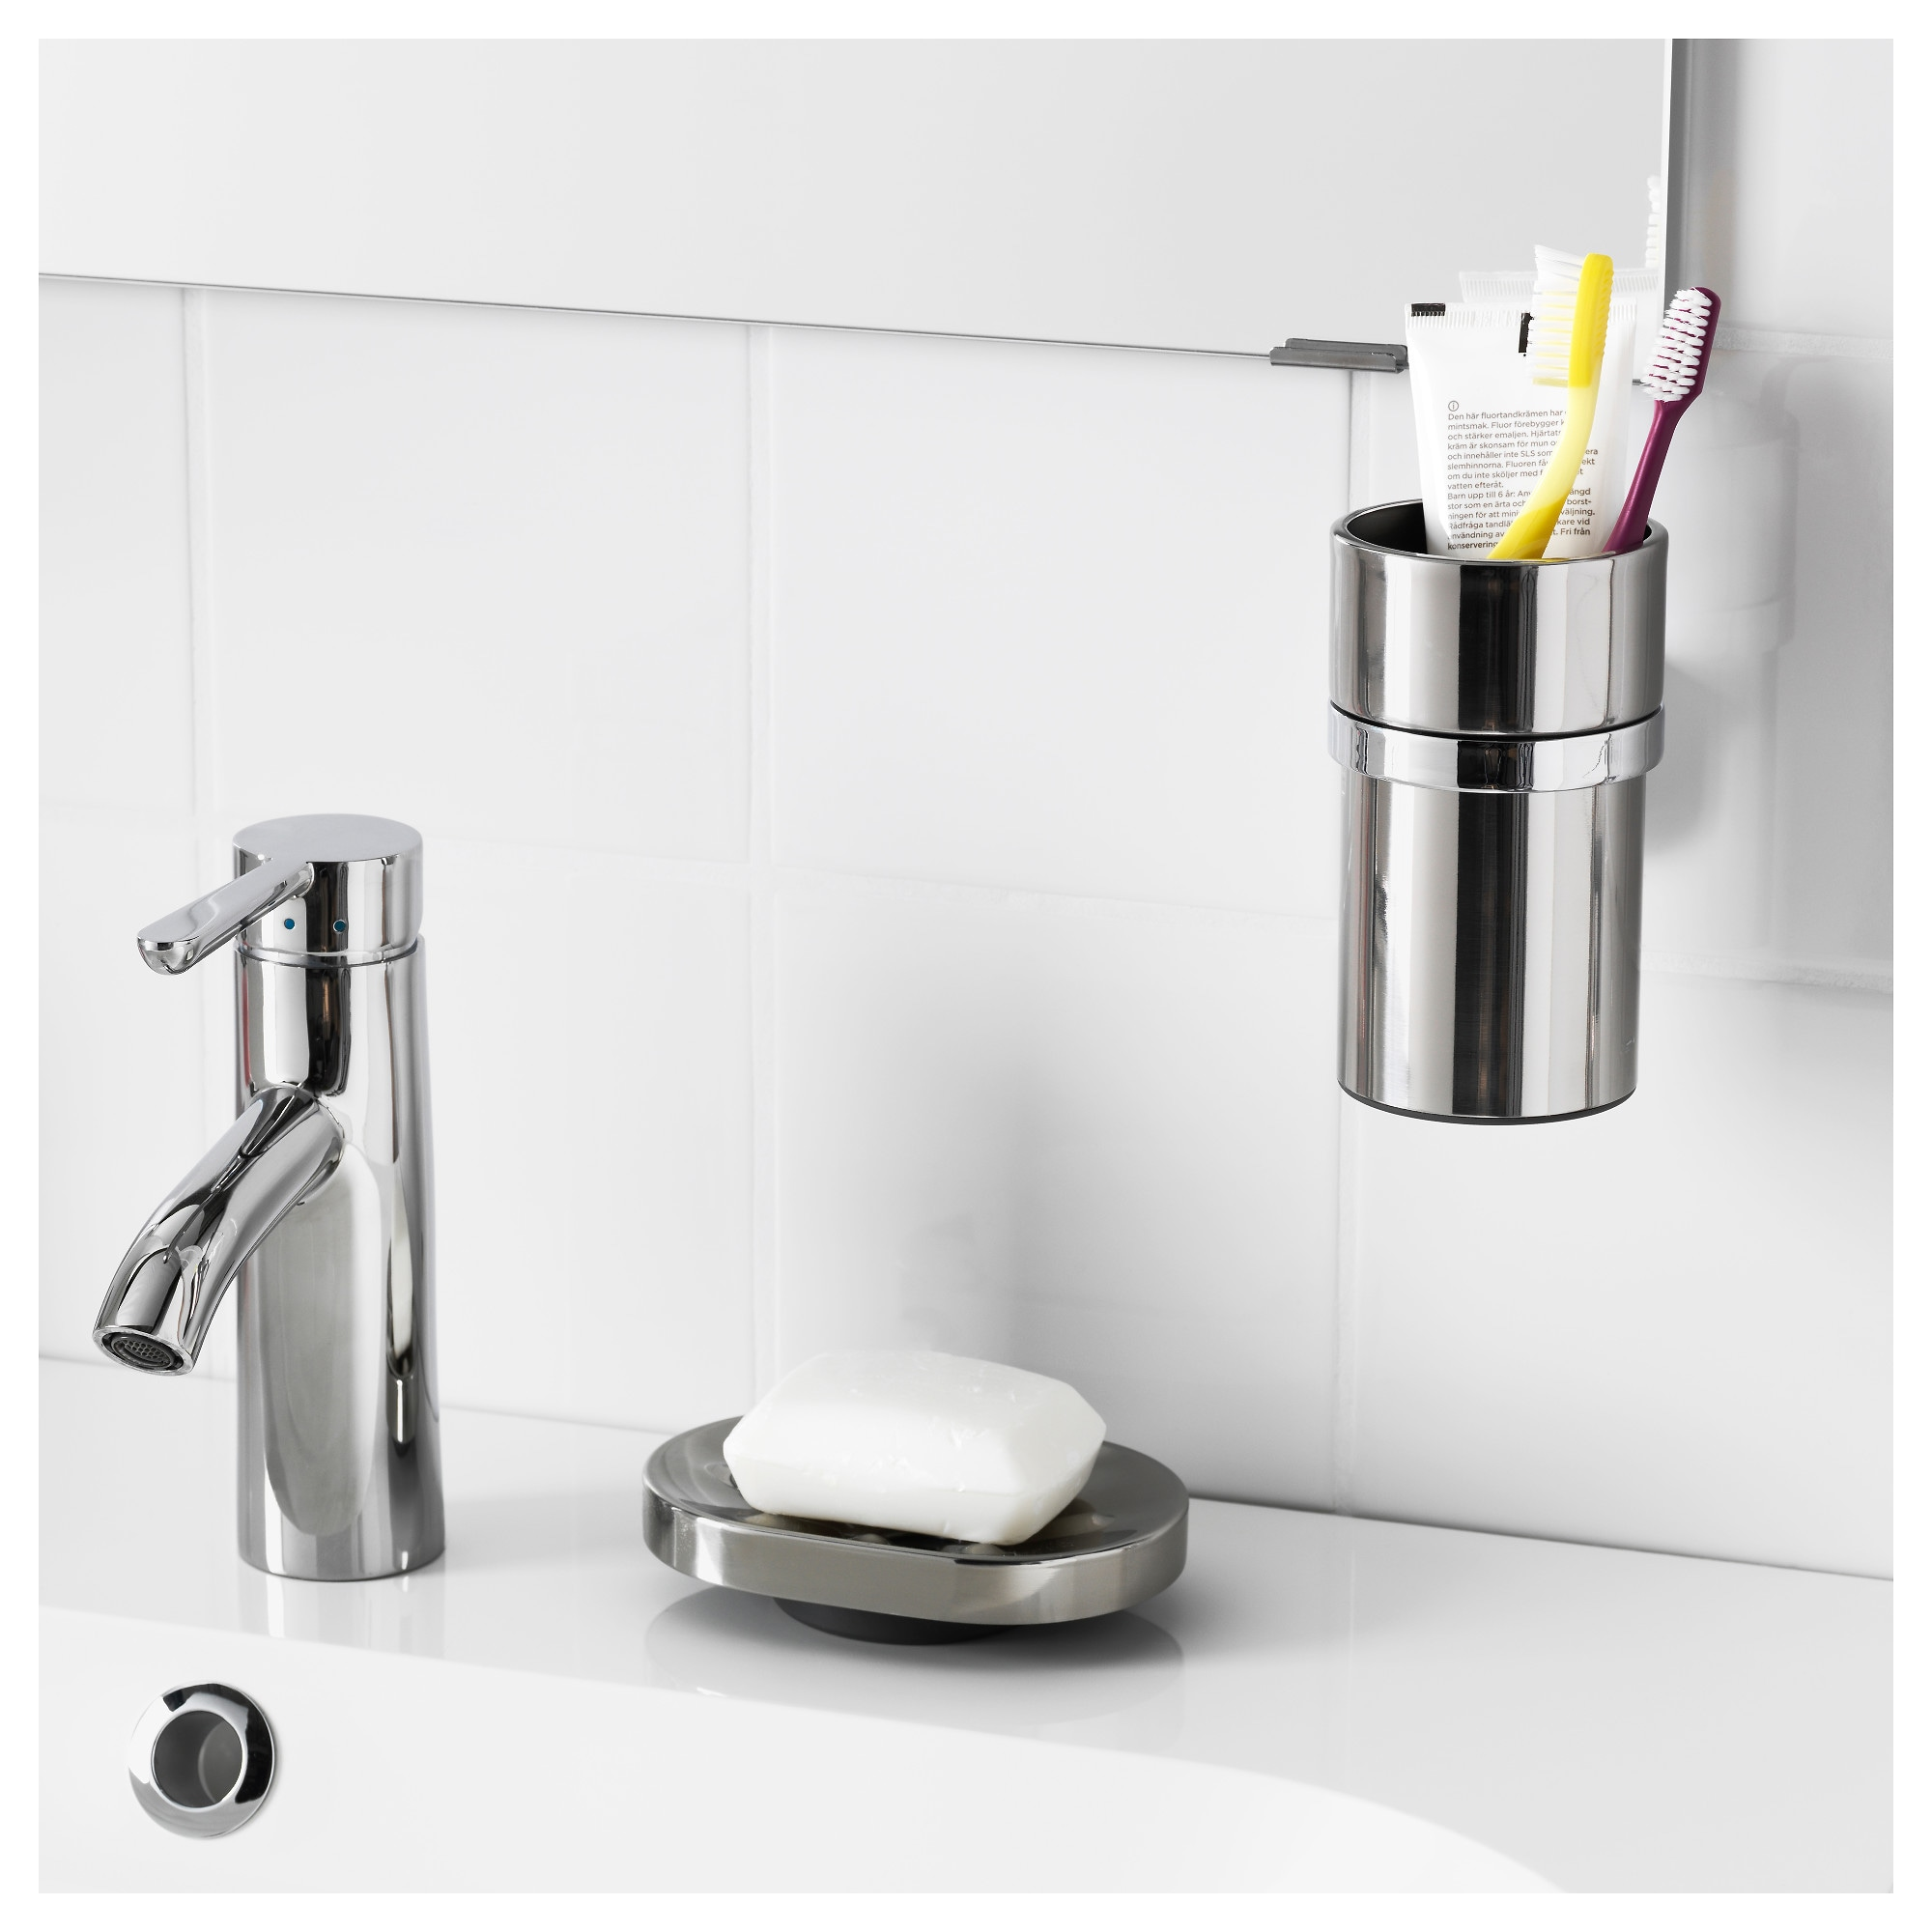 KALKGRUND Soap dispenser holder IKEA